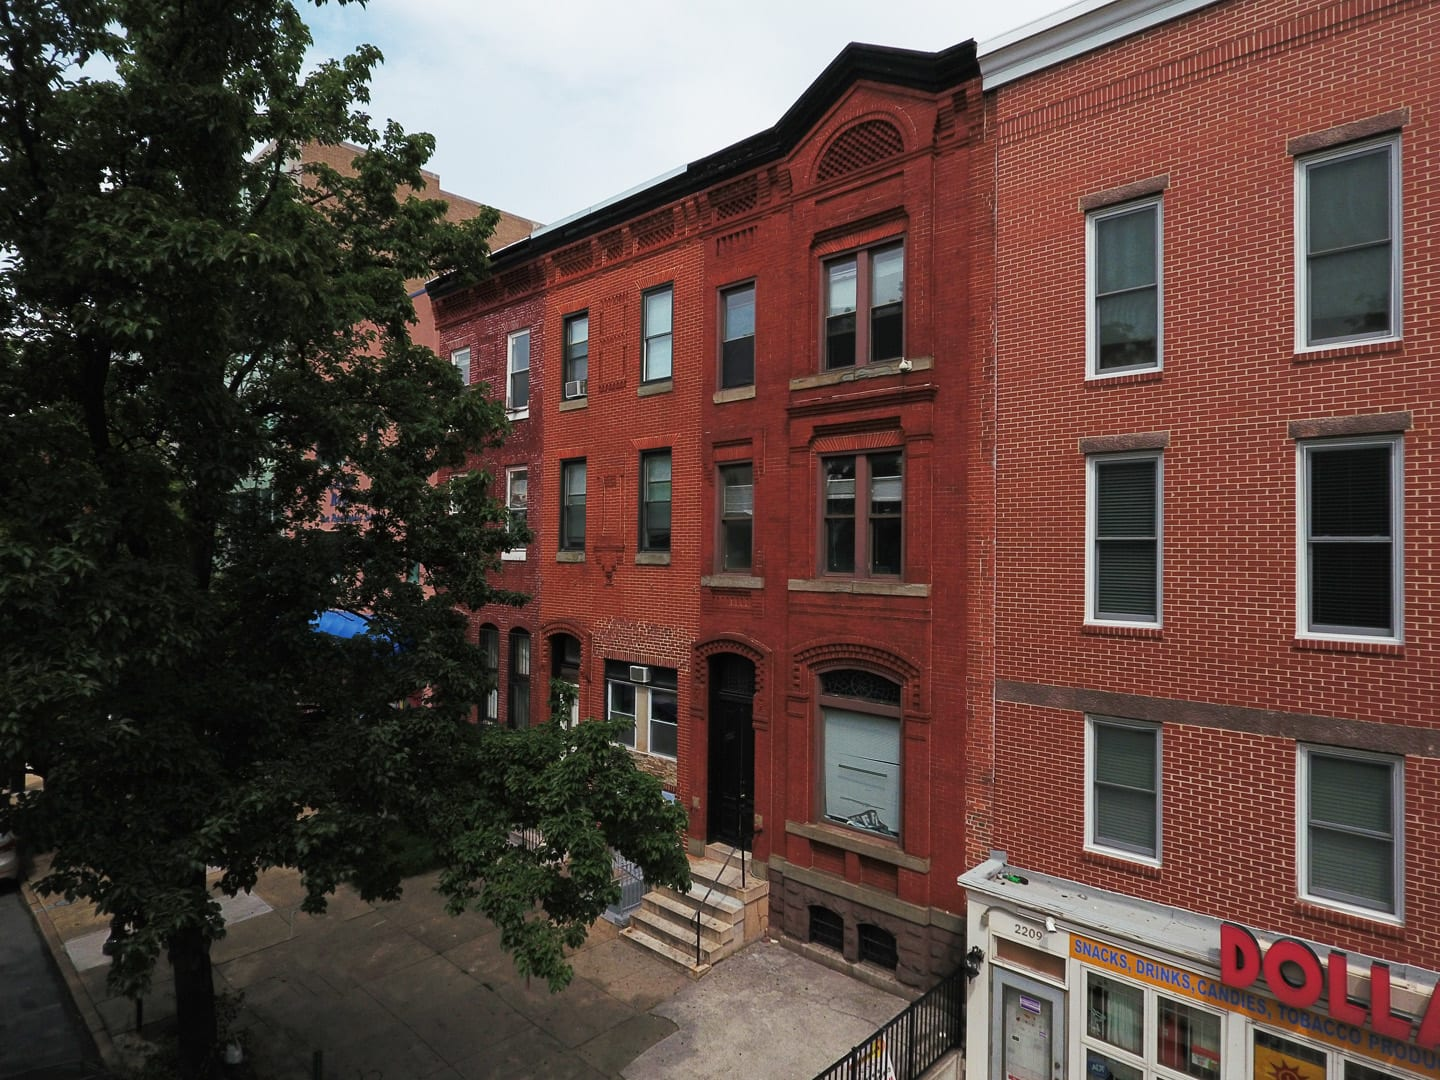 2211 N. Charles: 3 Apartments In Old Goucher